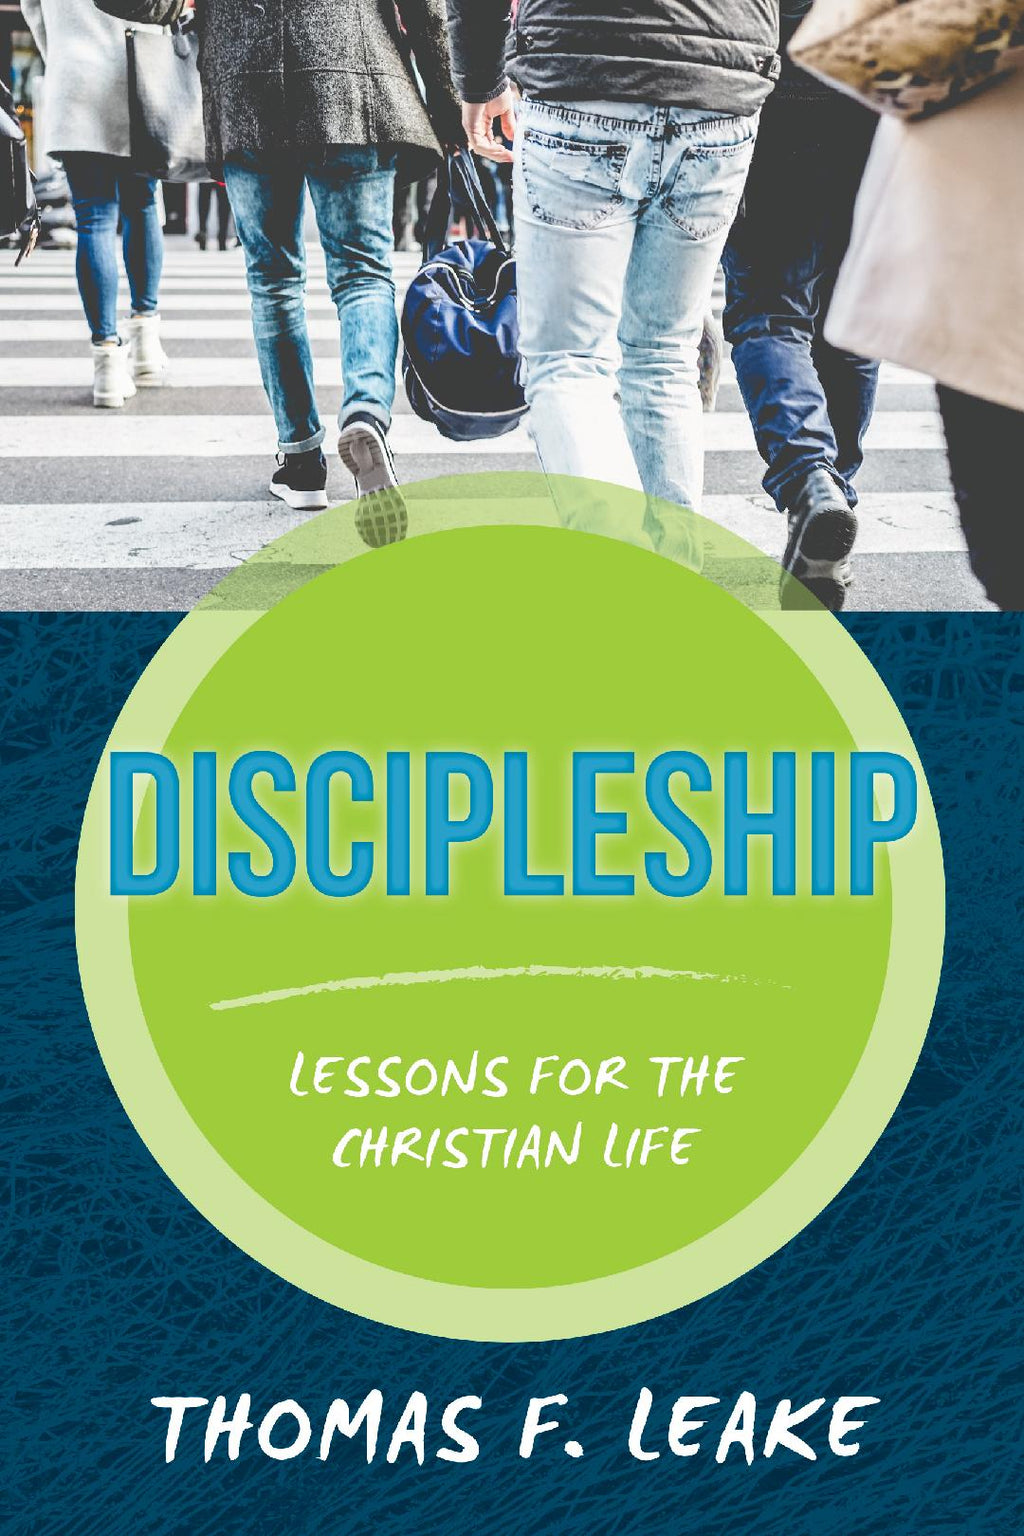 Discipleship: Lessons for the Christian Life